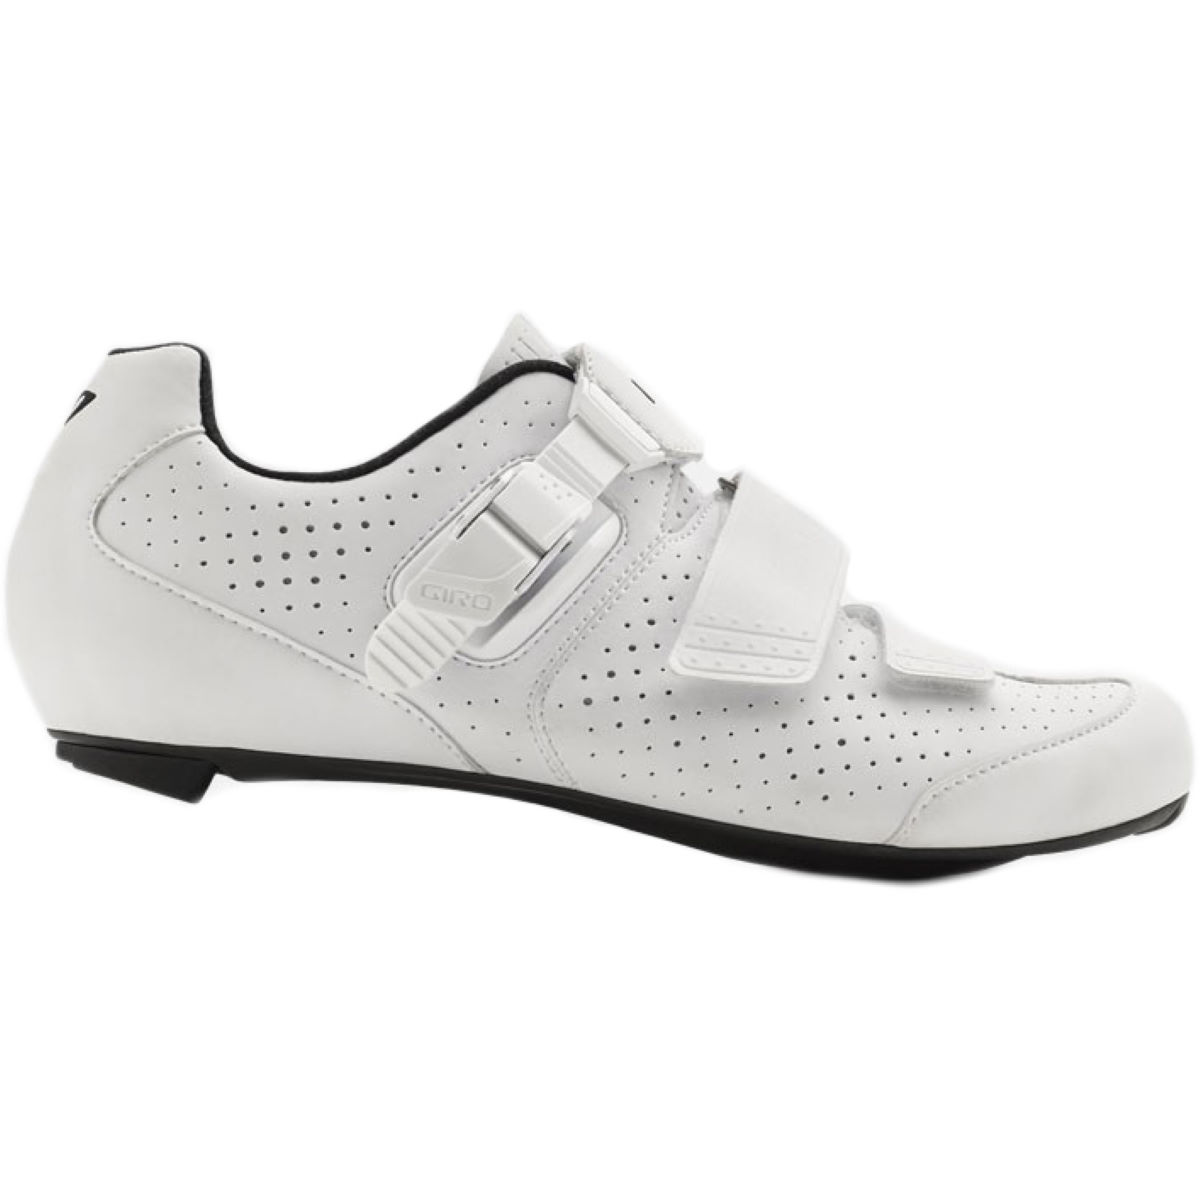 Giro Giro Trans E70 Road Shoe   Cycling Shoes